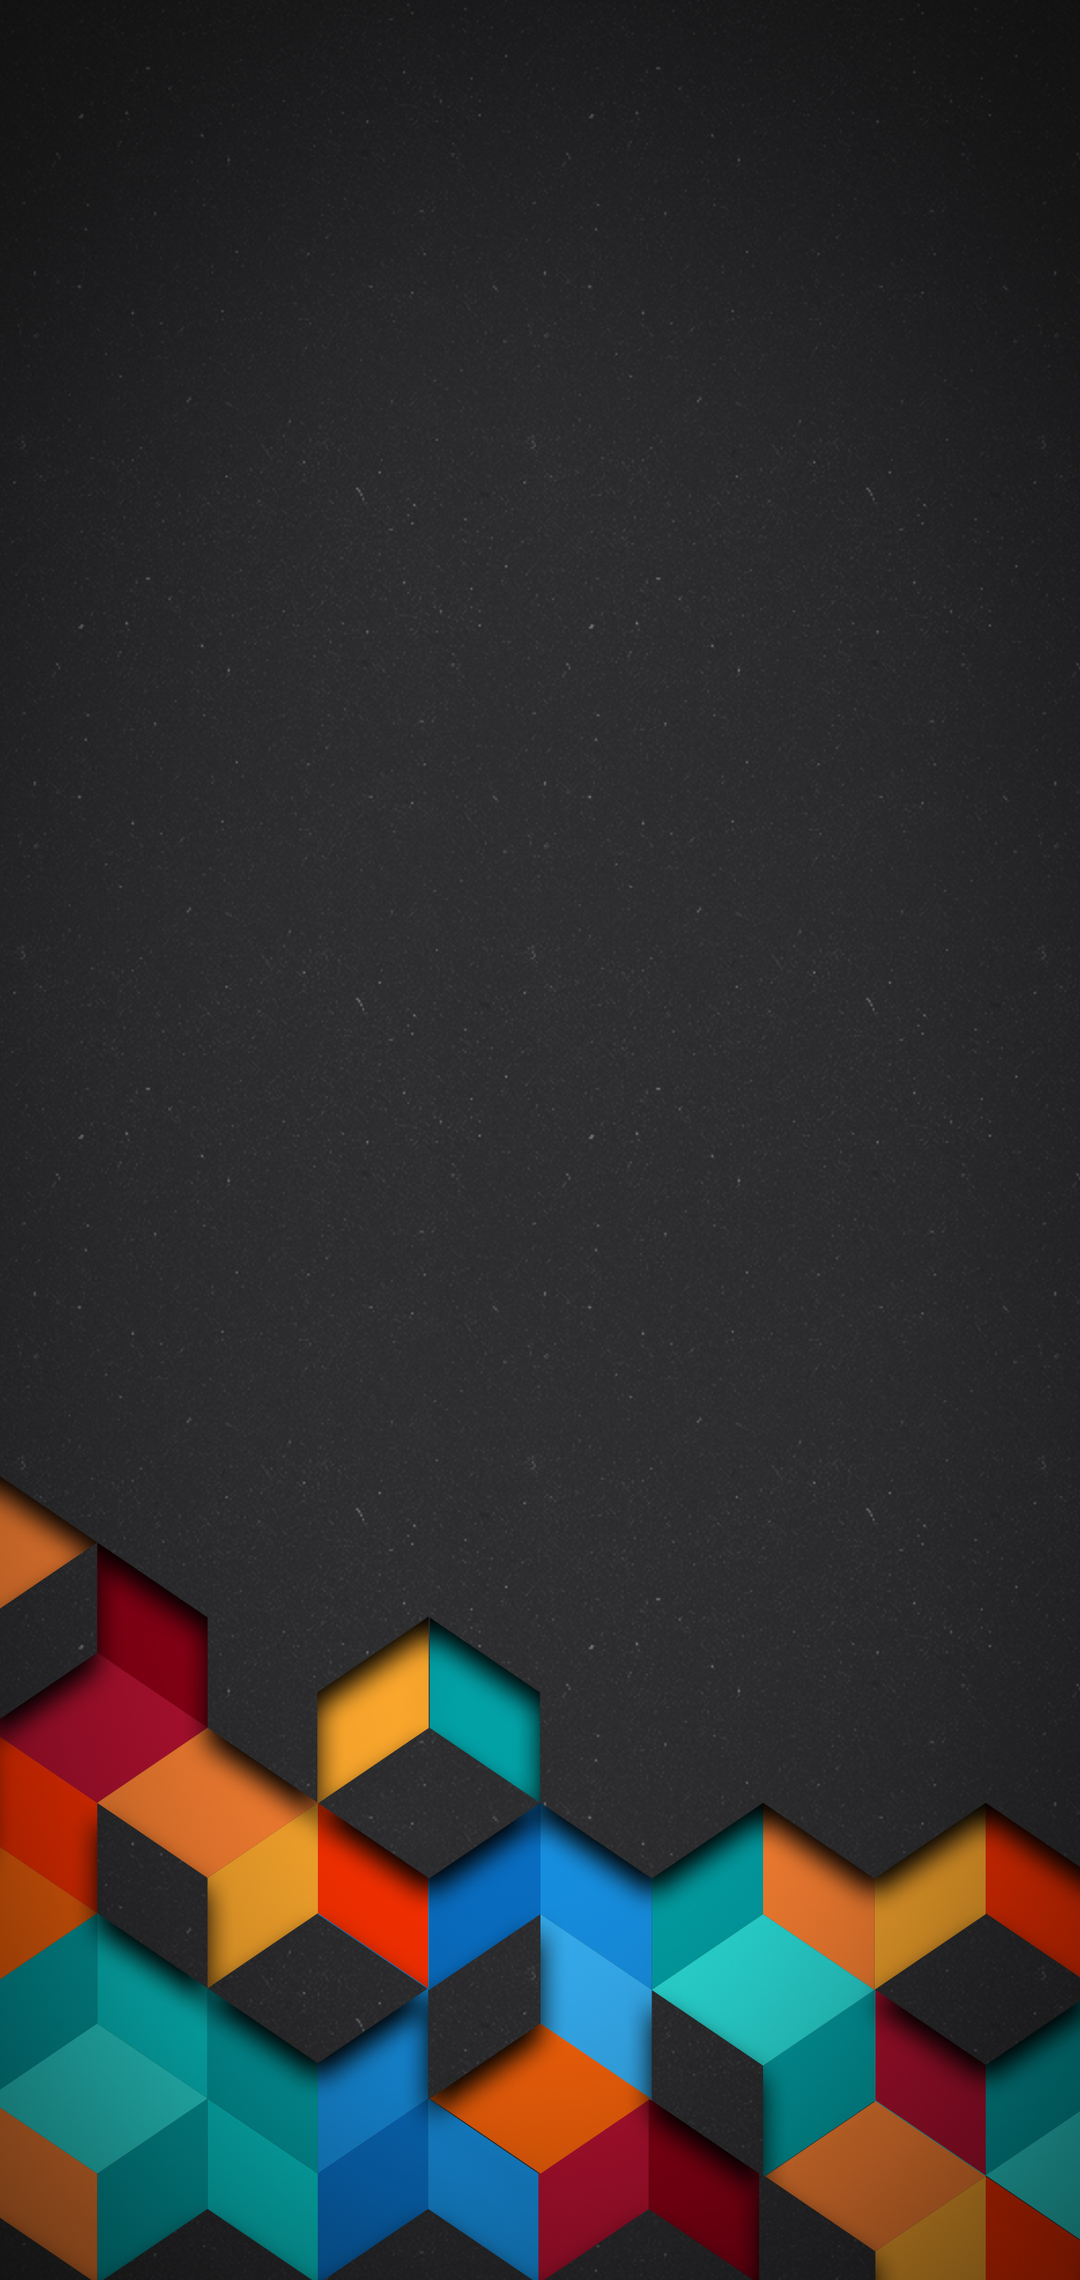 3d-cubes-abstract-diagonals-4k-gg.jpg